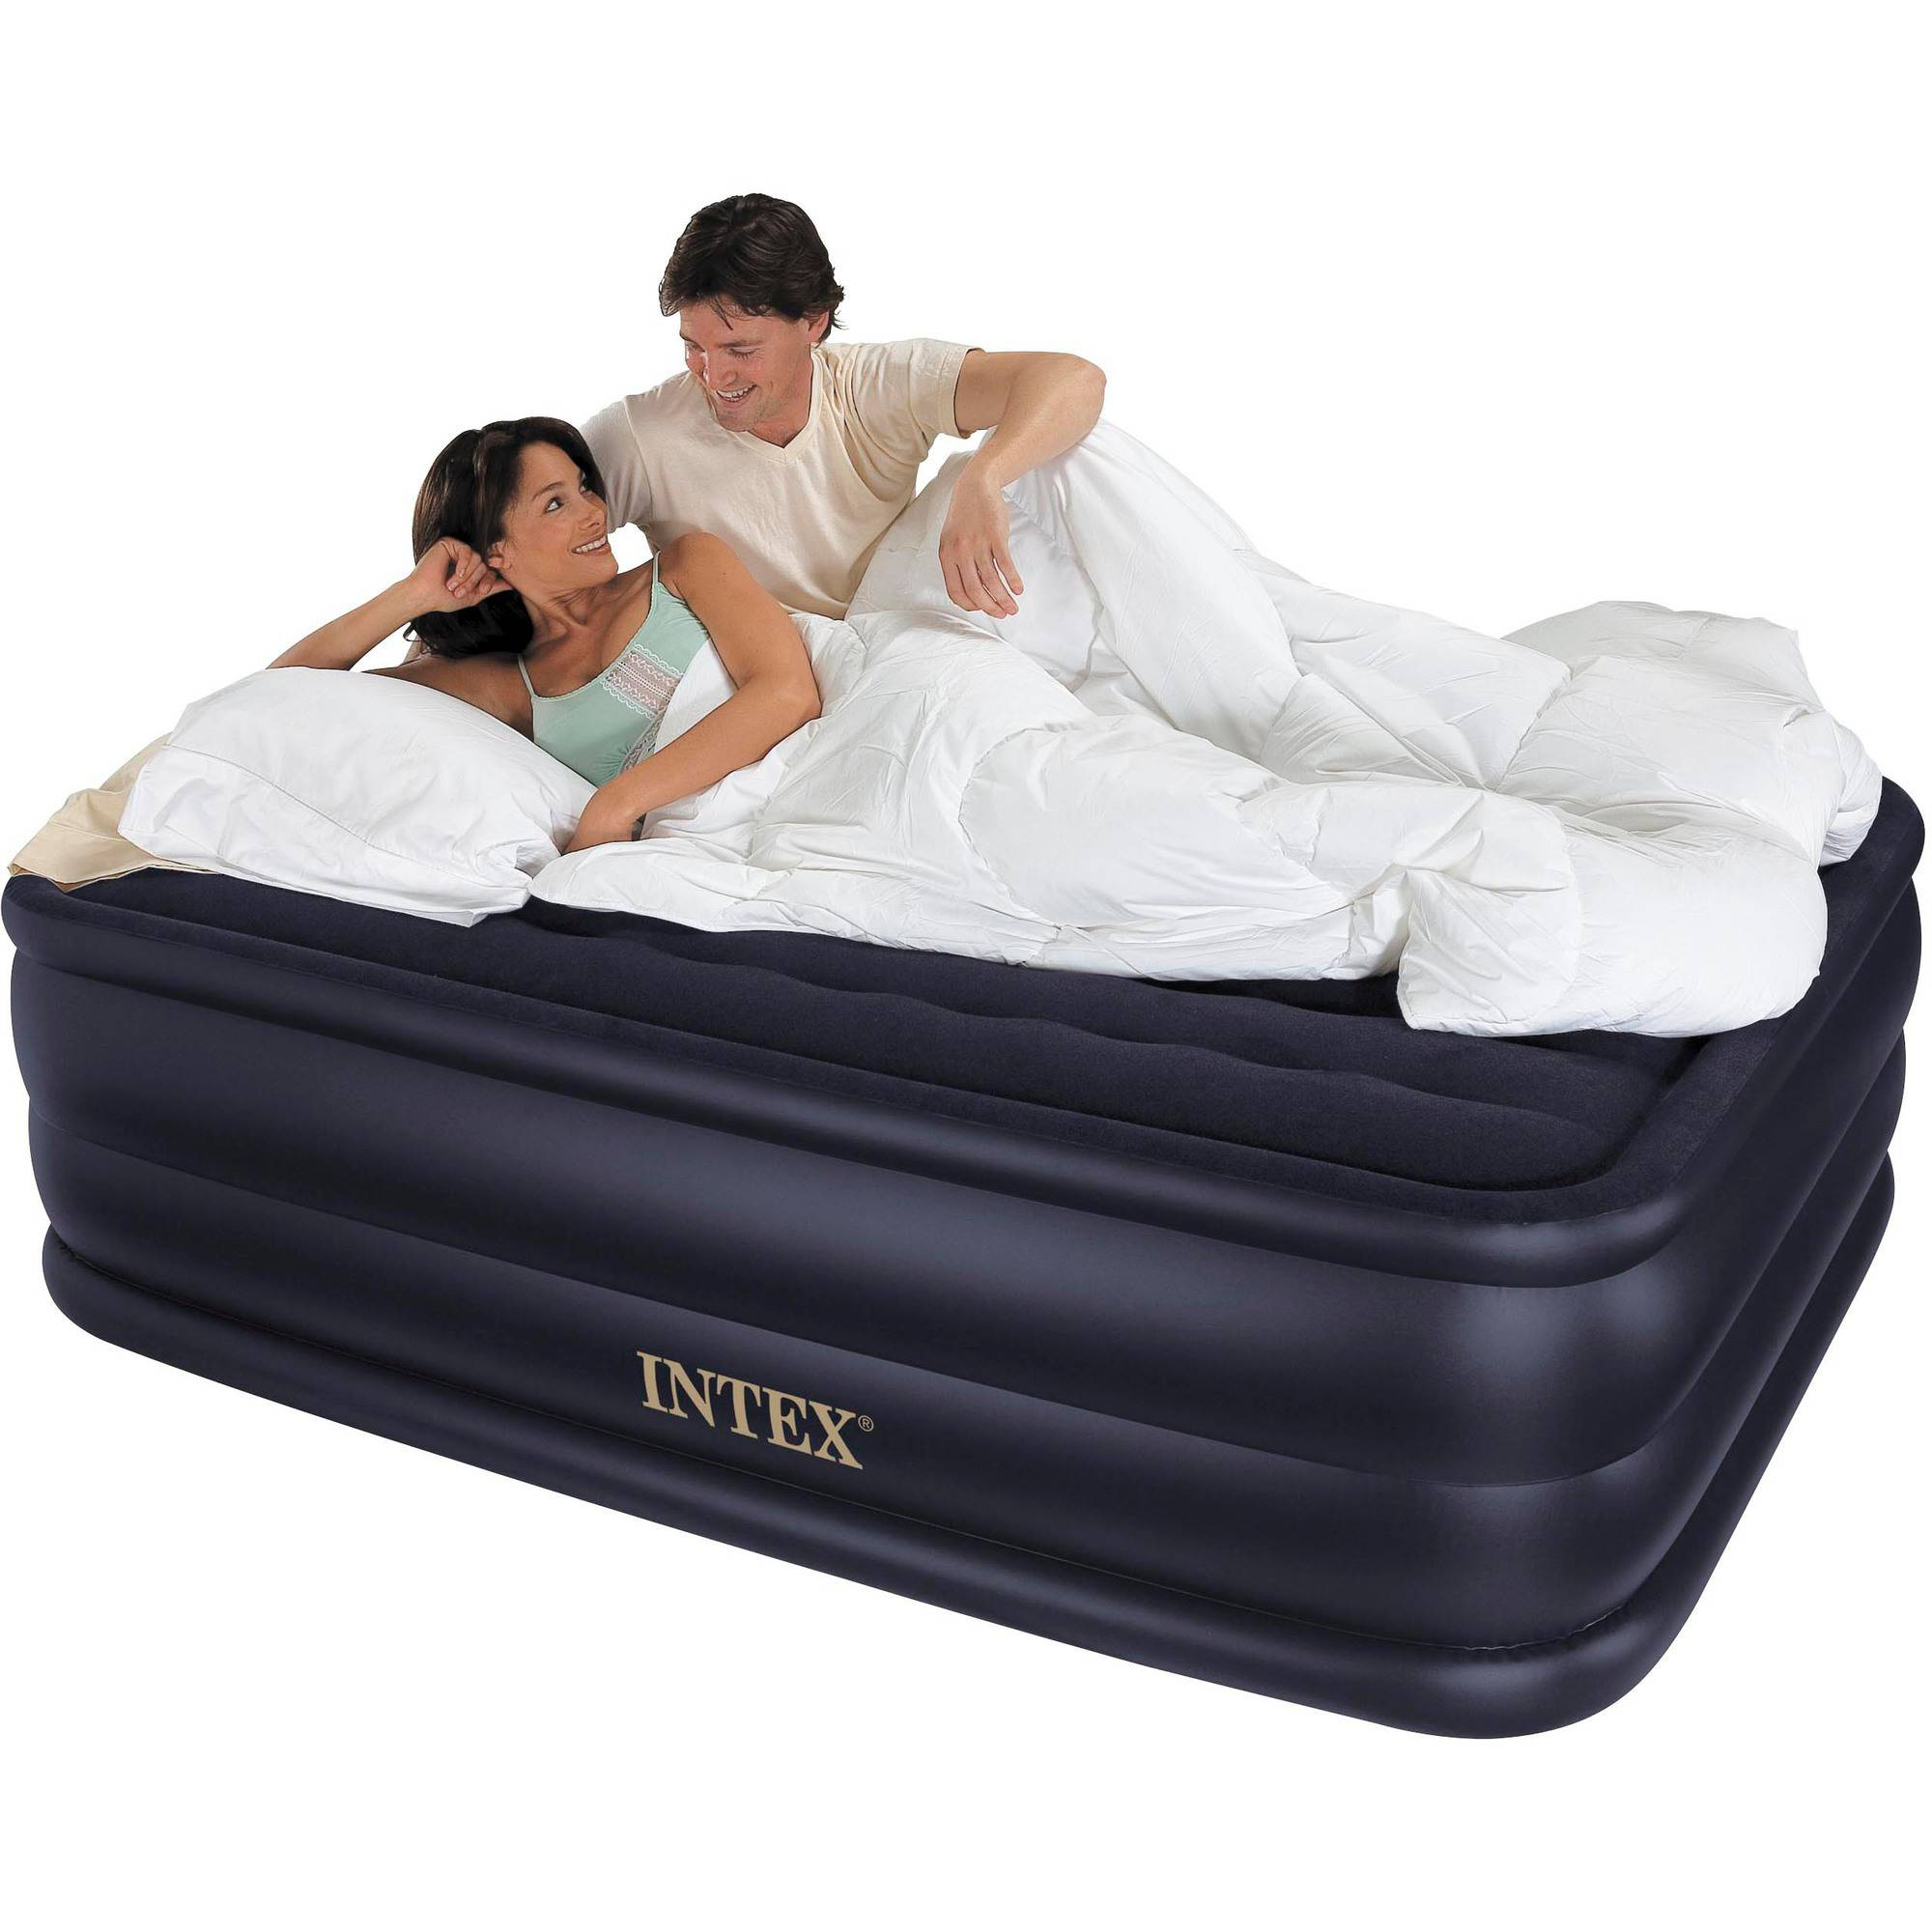 "Intex Queen 22"" Raised Downy Airbed Mattress with Built-in Electric Pump"